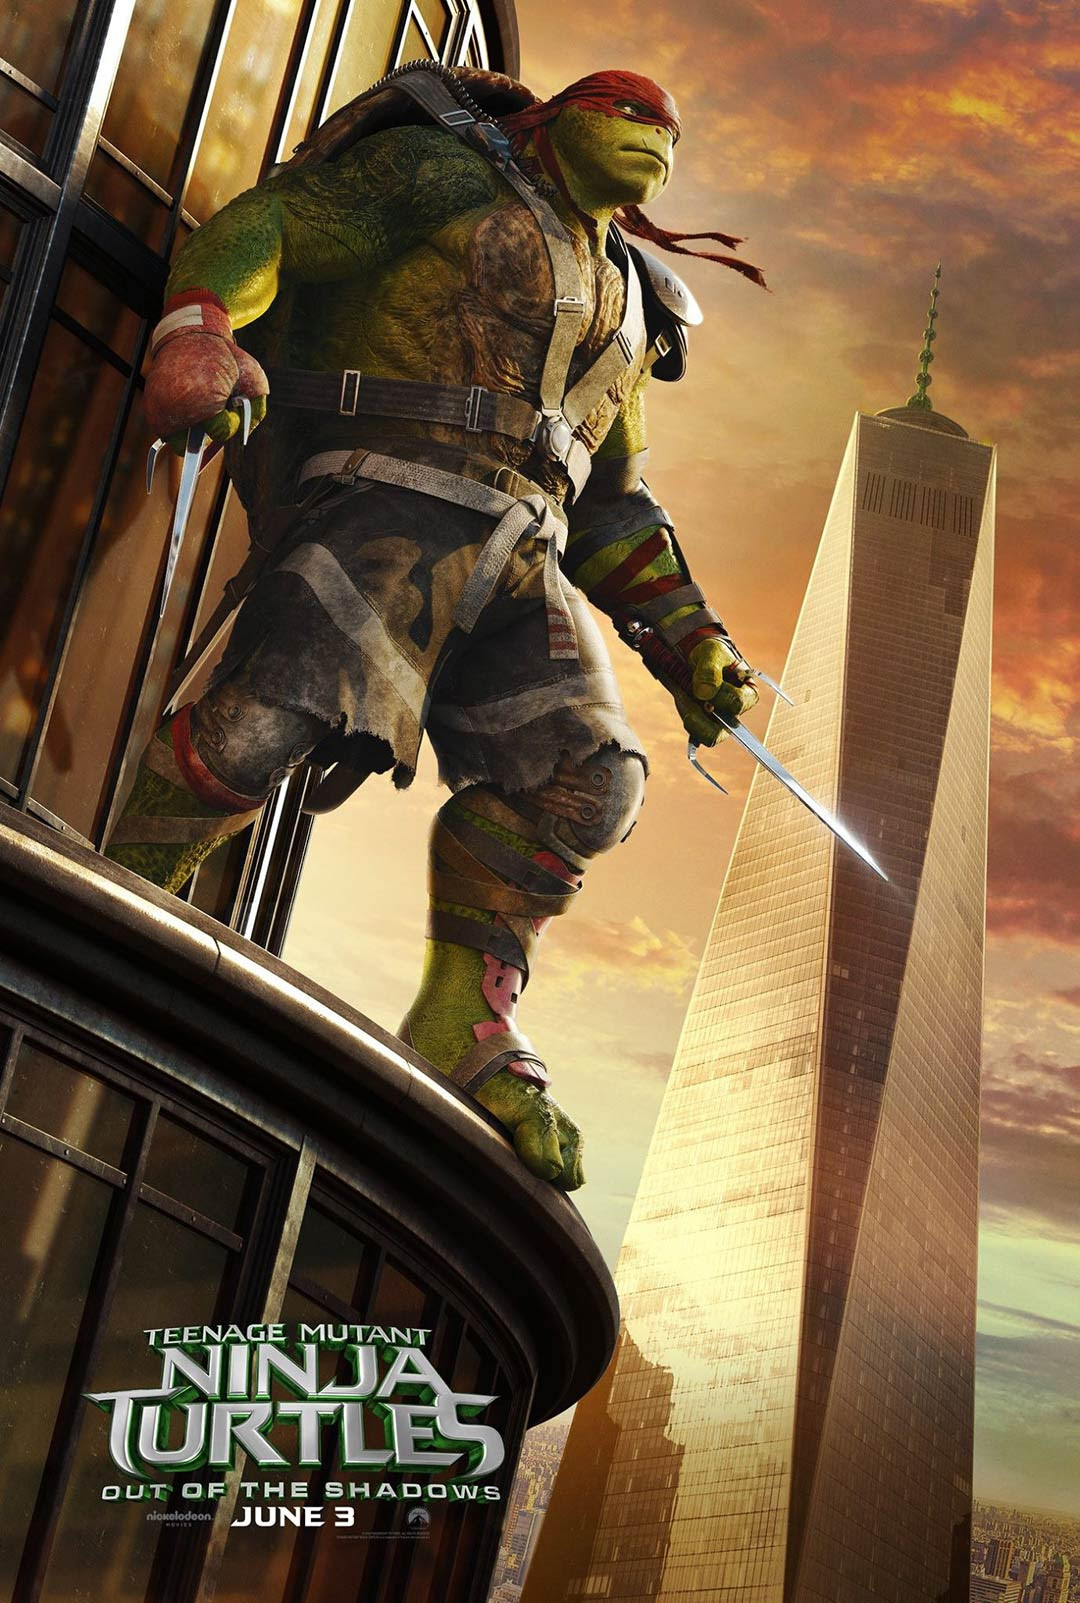 Resultado de imagem para Teenage Mutant Ninja Turtles - out of the Shadows posters